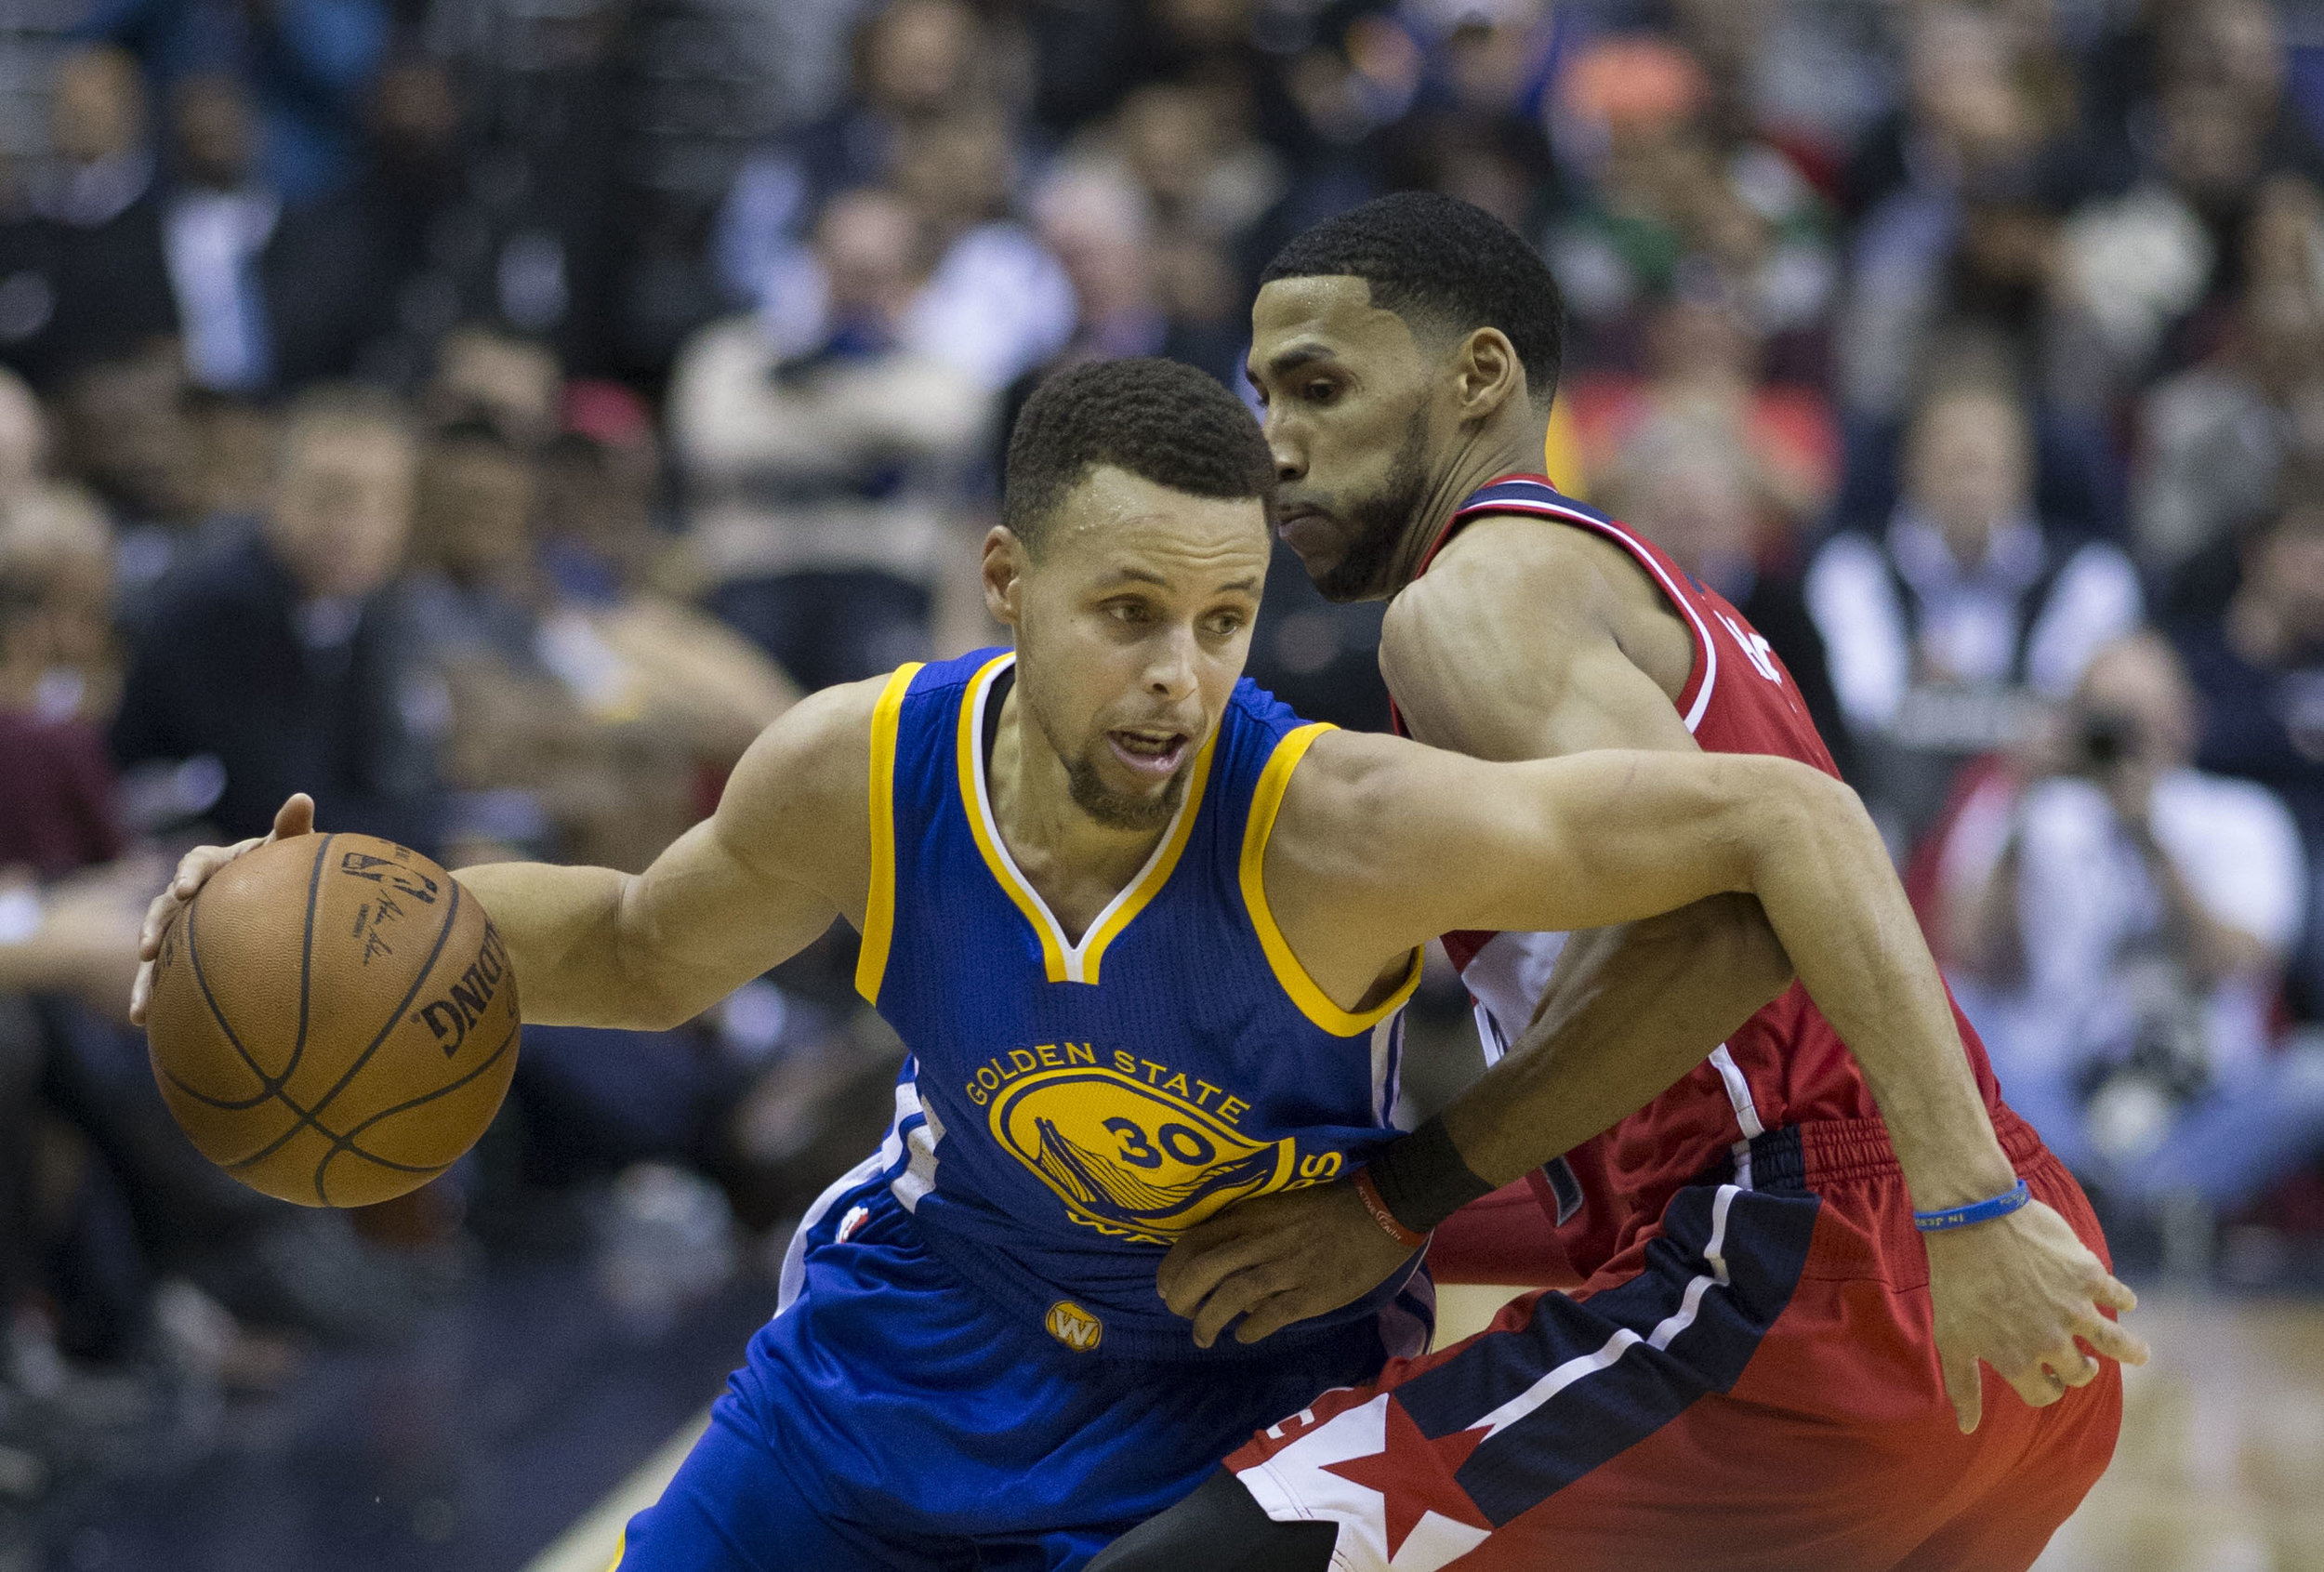 Future MBAs? Steph Curry and Draymond Green has the type of leadership that top business schools want to see in their applicants.